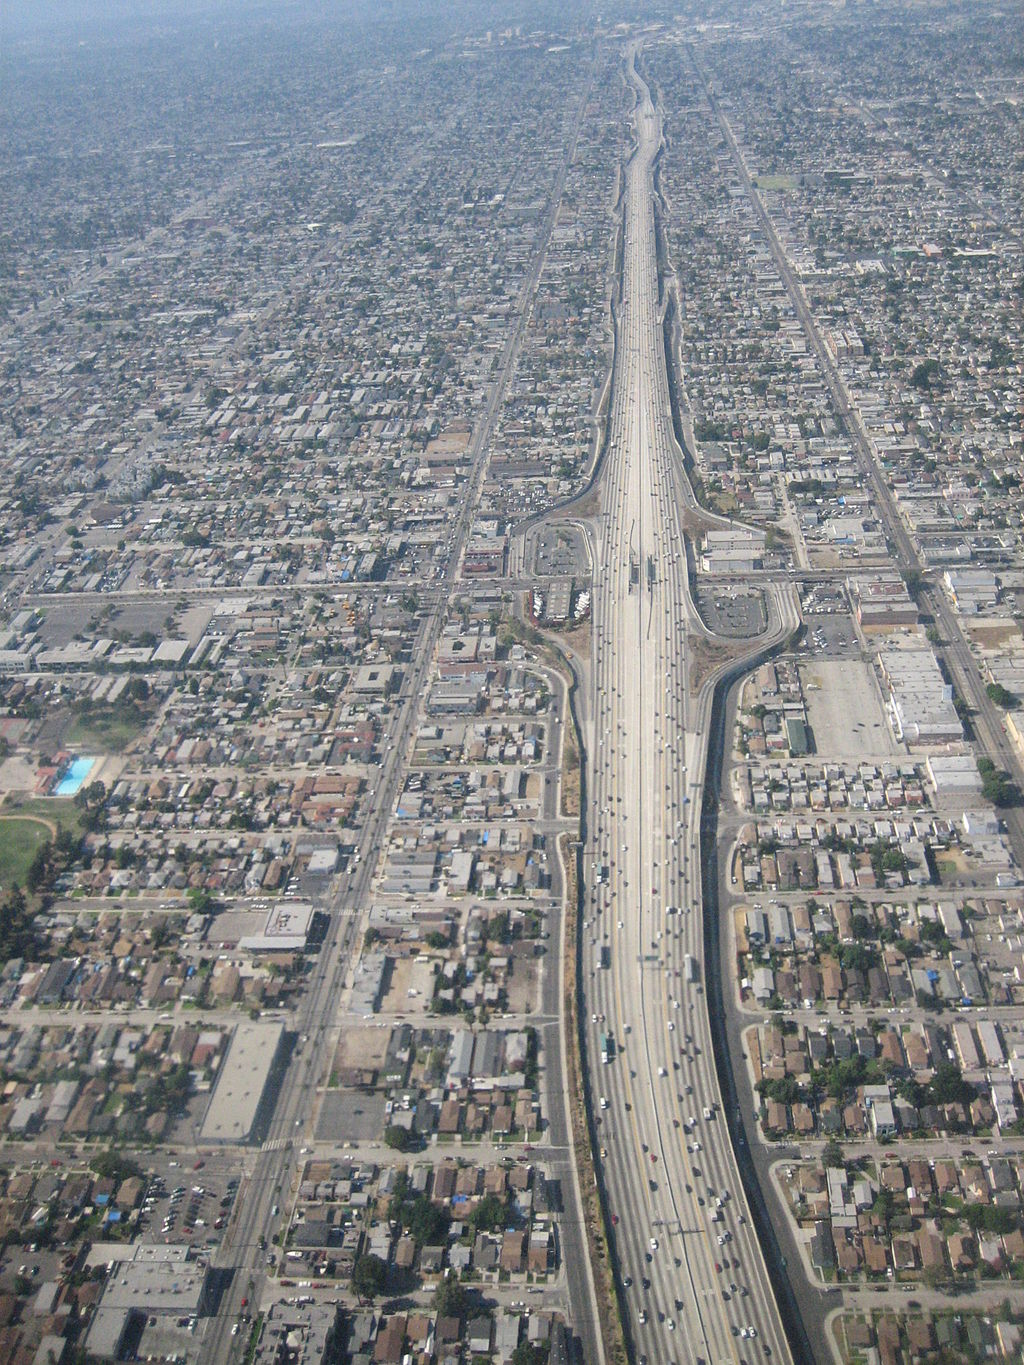 I-110 in Los Angeles